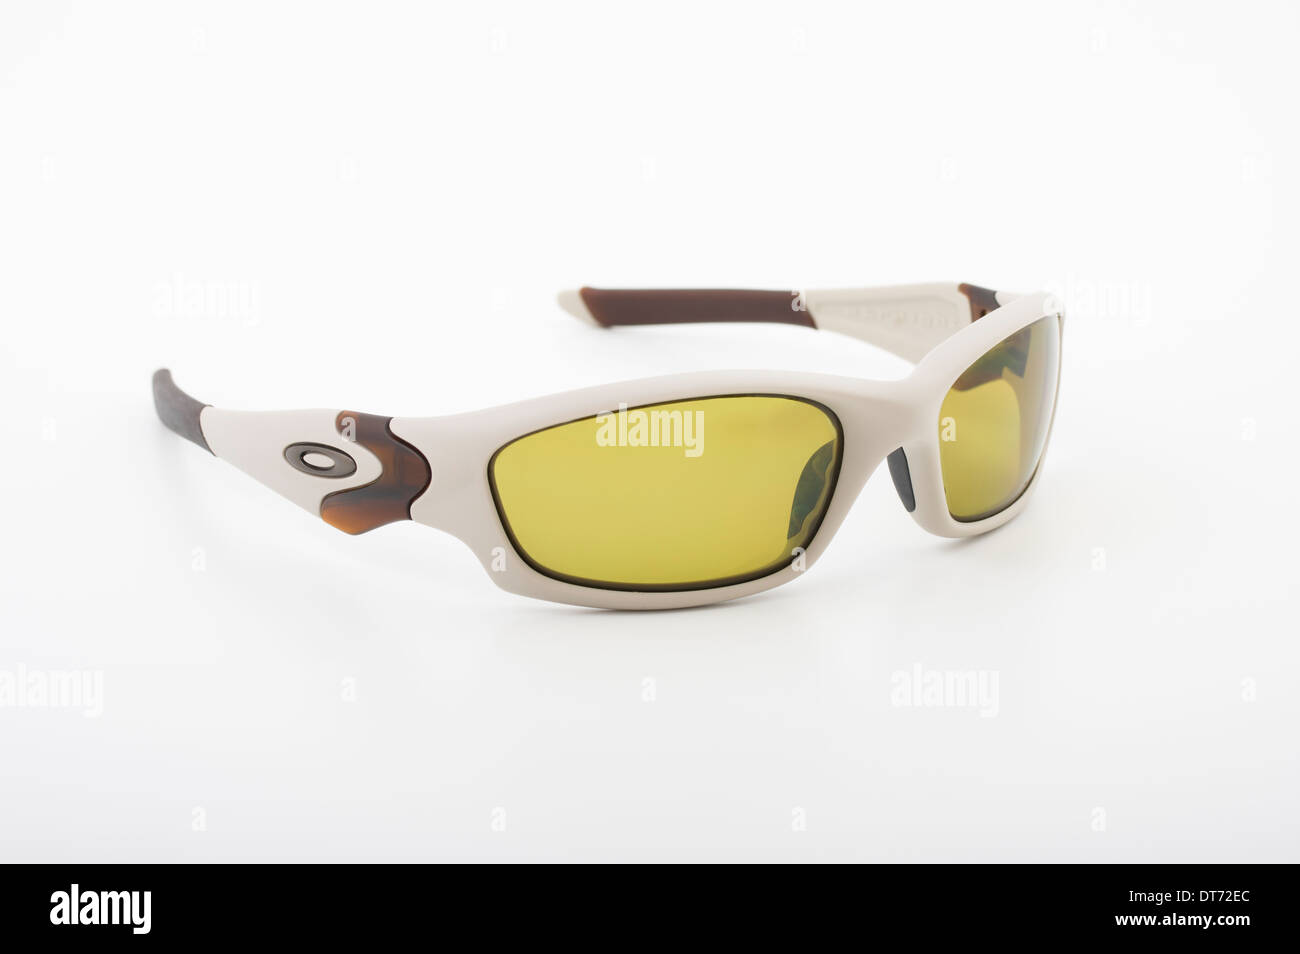 Oakley Sunglasses Stockfotos & Oakley Sunglasses Bilder - Alamy